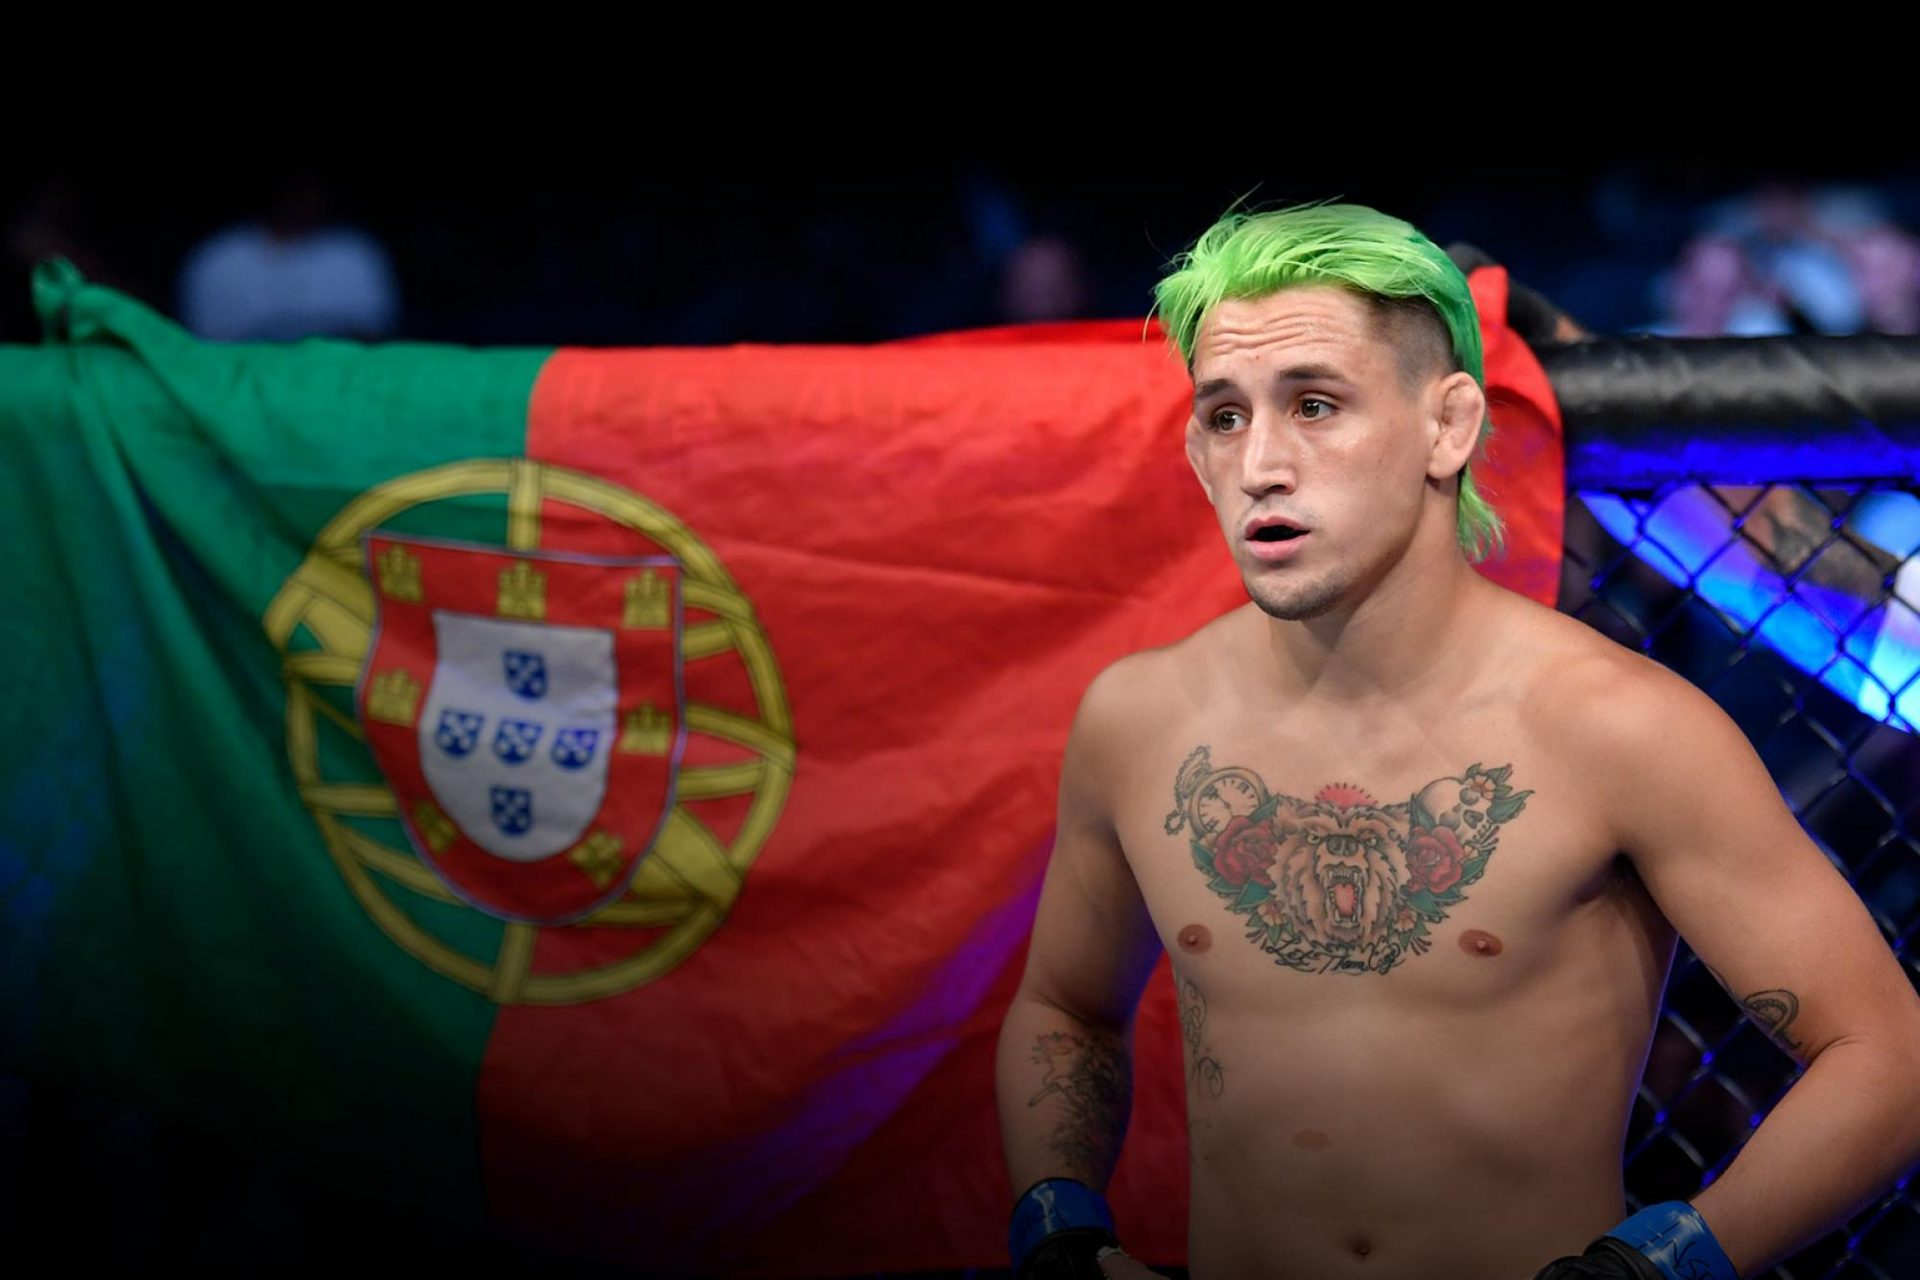 Kris Moutinho wants to prove a point in his next fight: 'I'm not just a punching bag' - moutinho